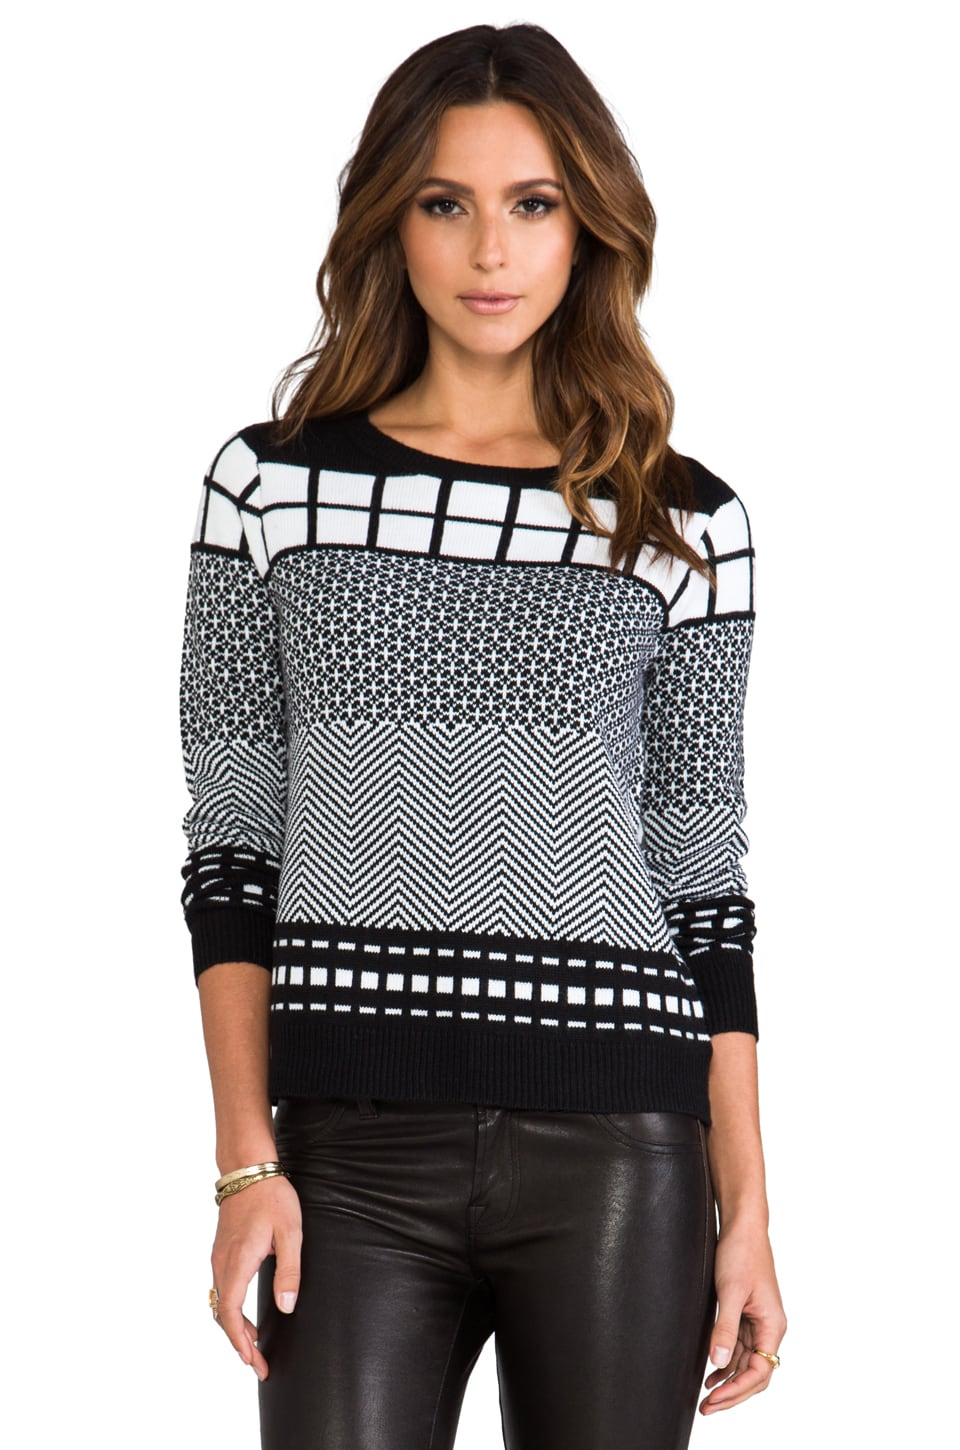 BB Dakota Alexander Geometric Patter Pullover in Black